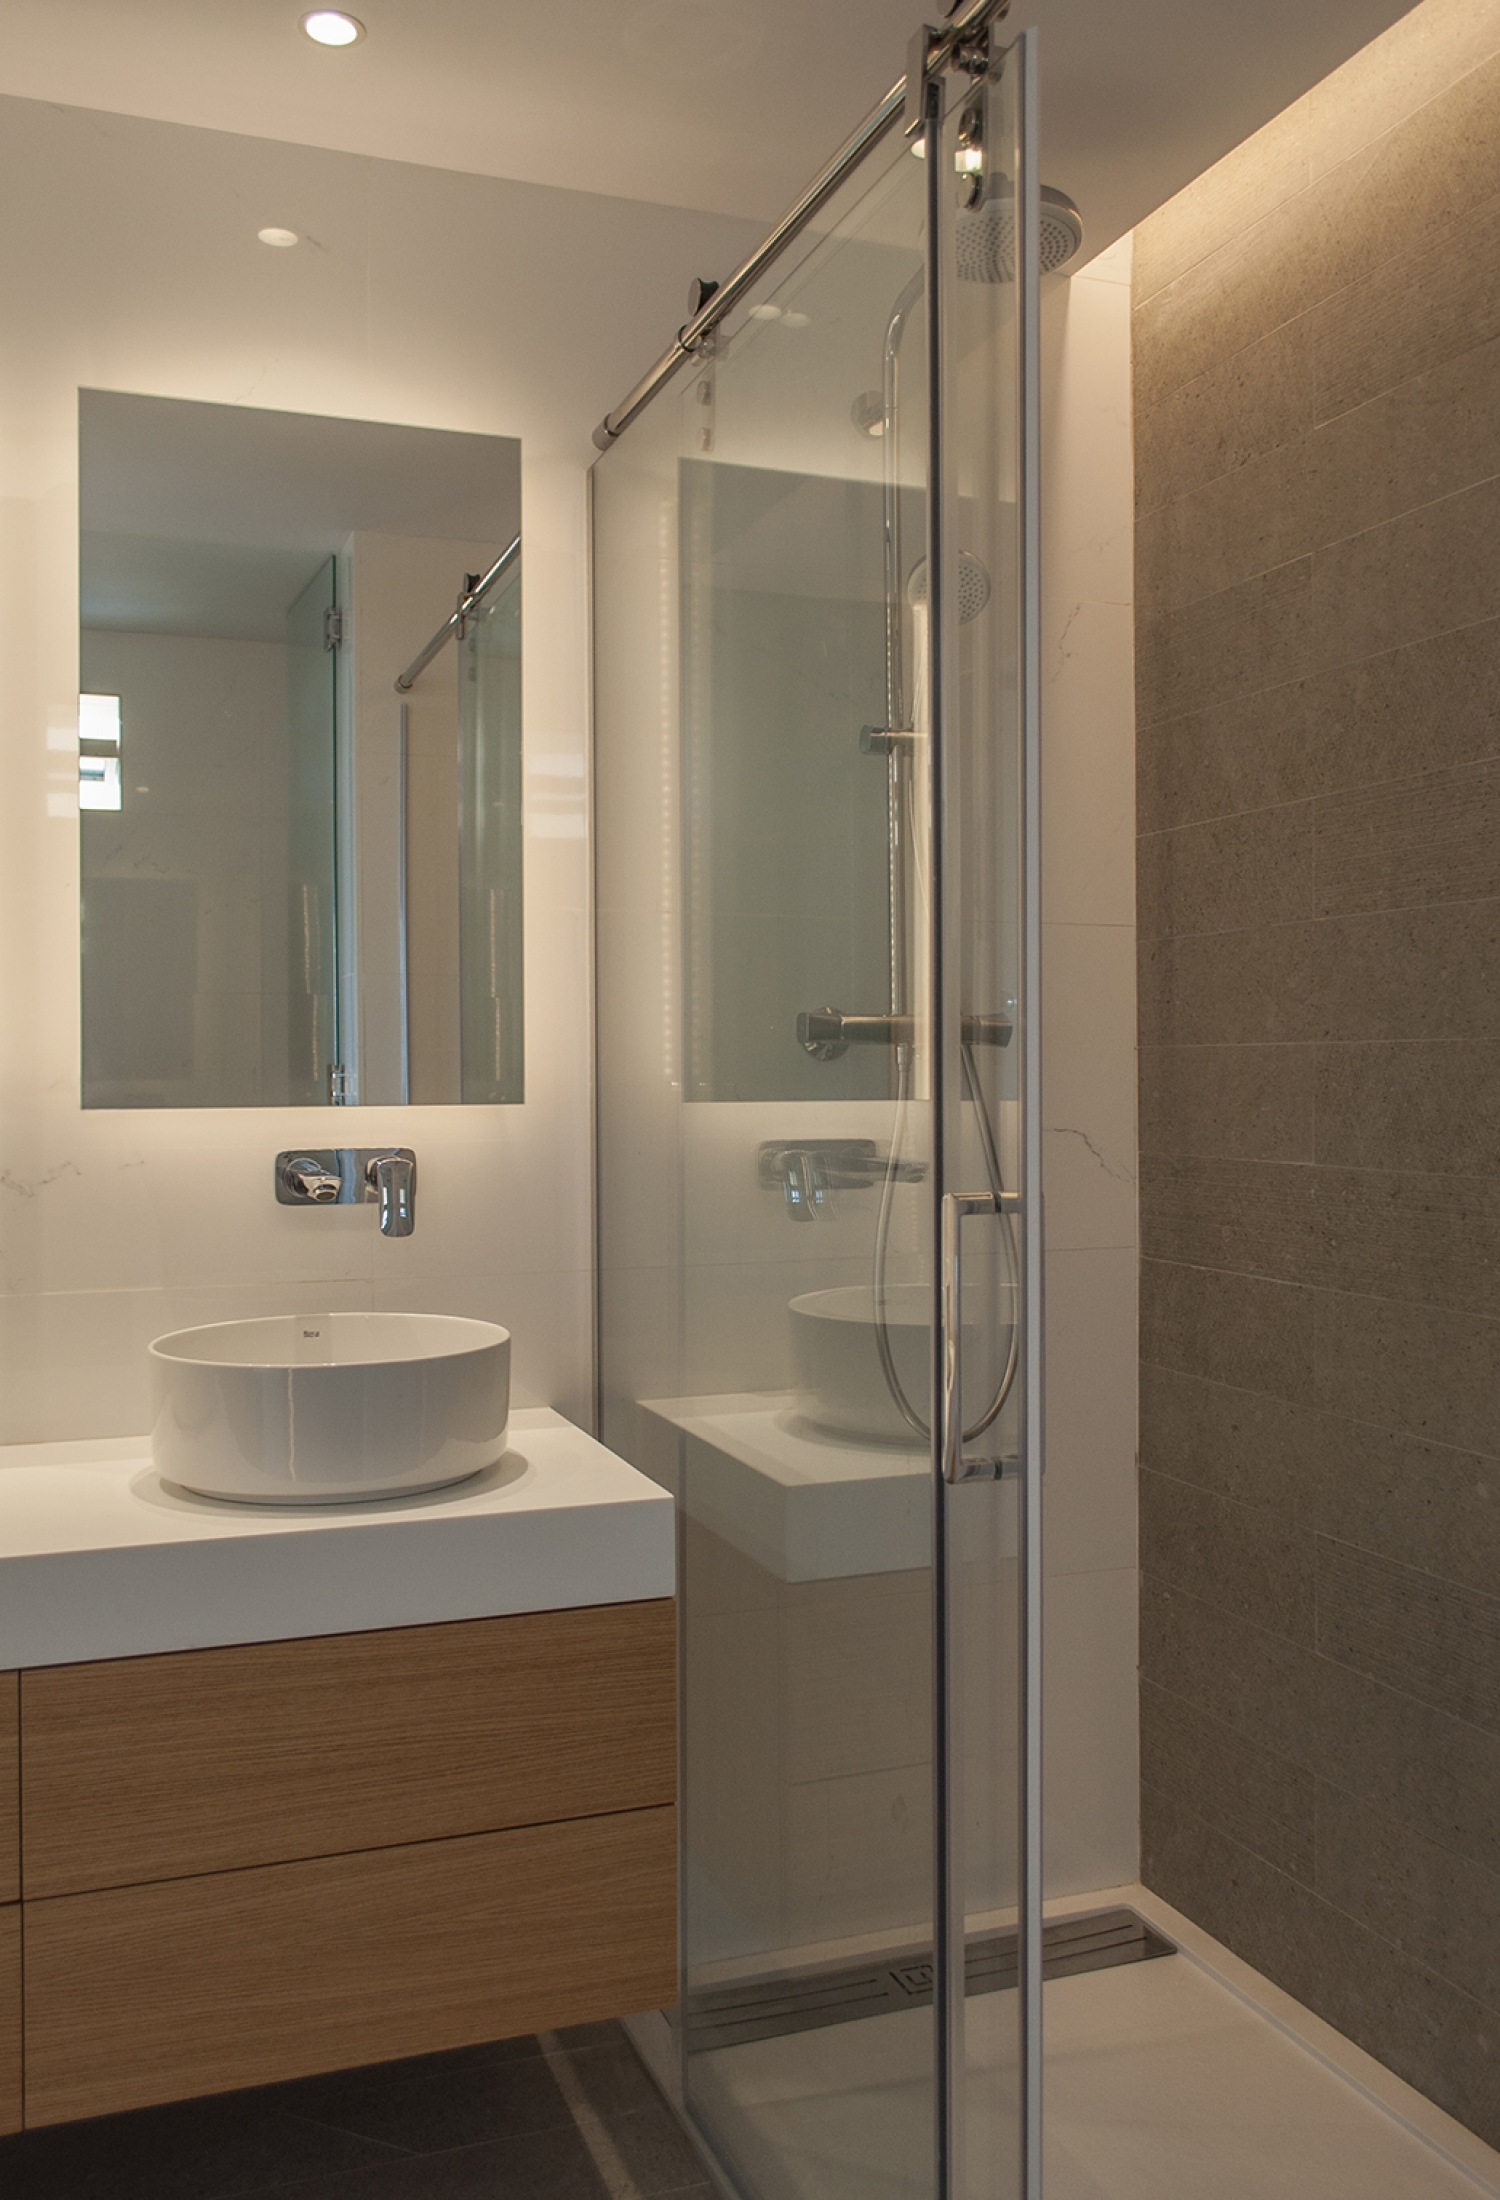 16-architecture-sitges-interior-design-barcelona-modern-bathroom-shower-krion-wood-furniture